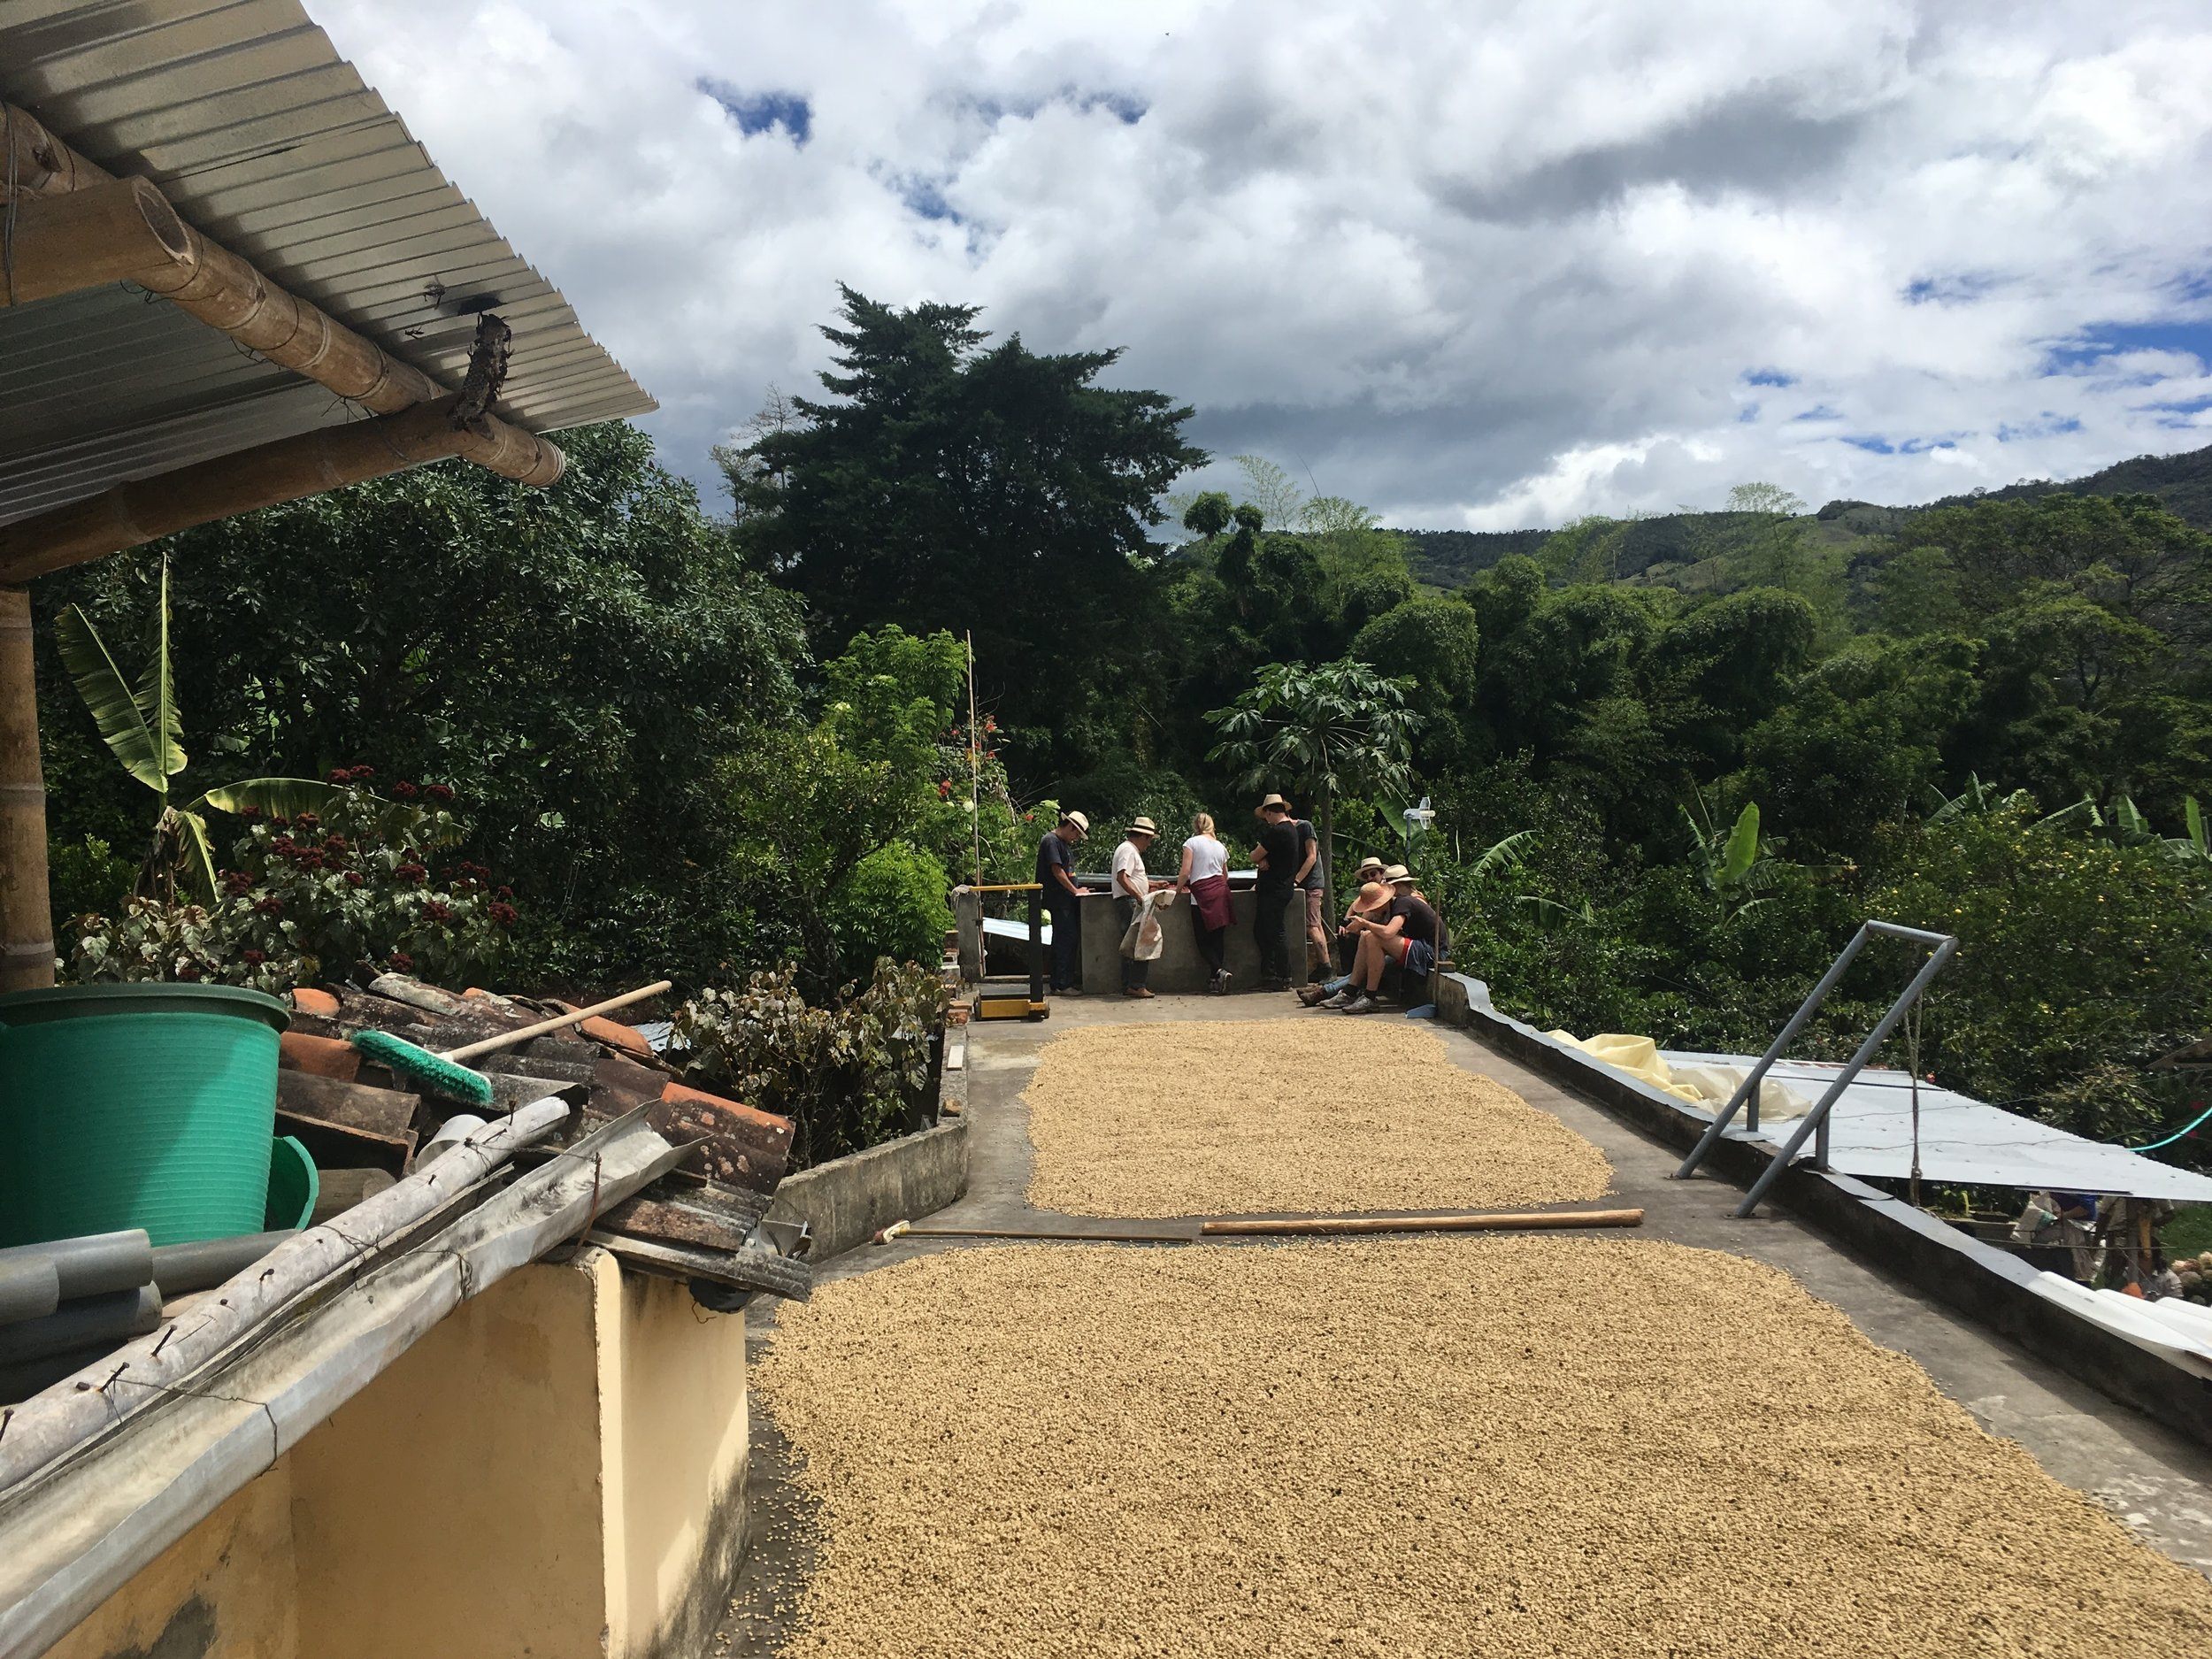 Drying coffee on the roof of the Argote estate.